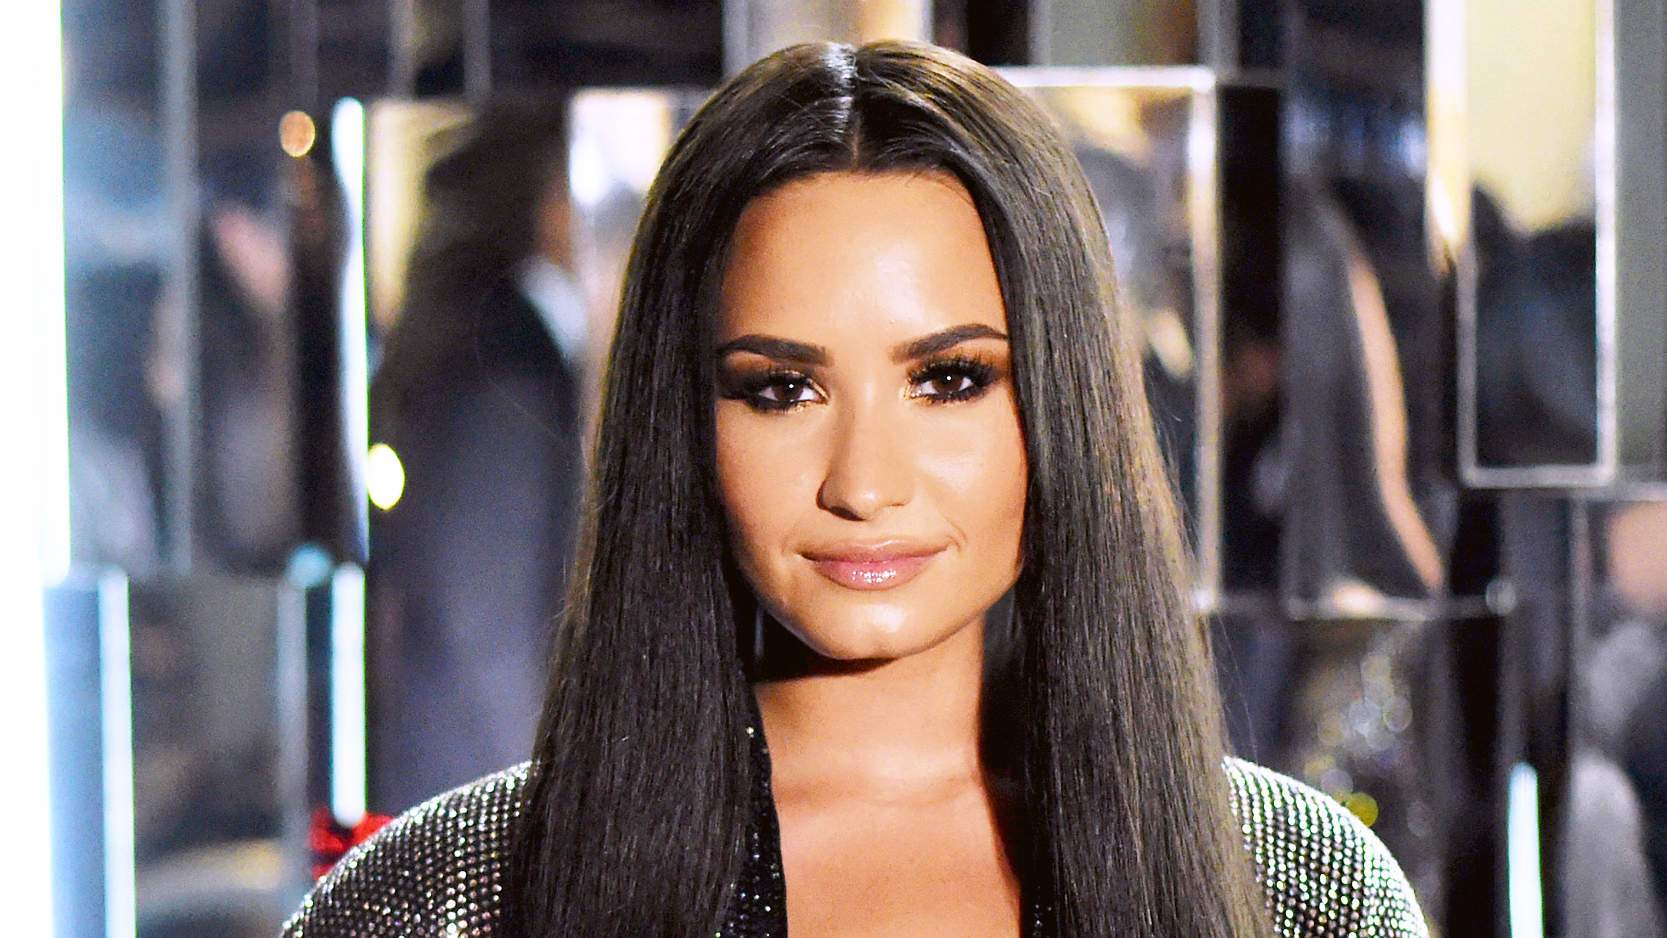 Clone of Demi Lovato Just Chopped Off All Her Hair